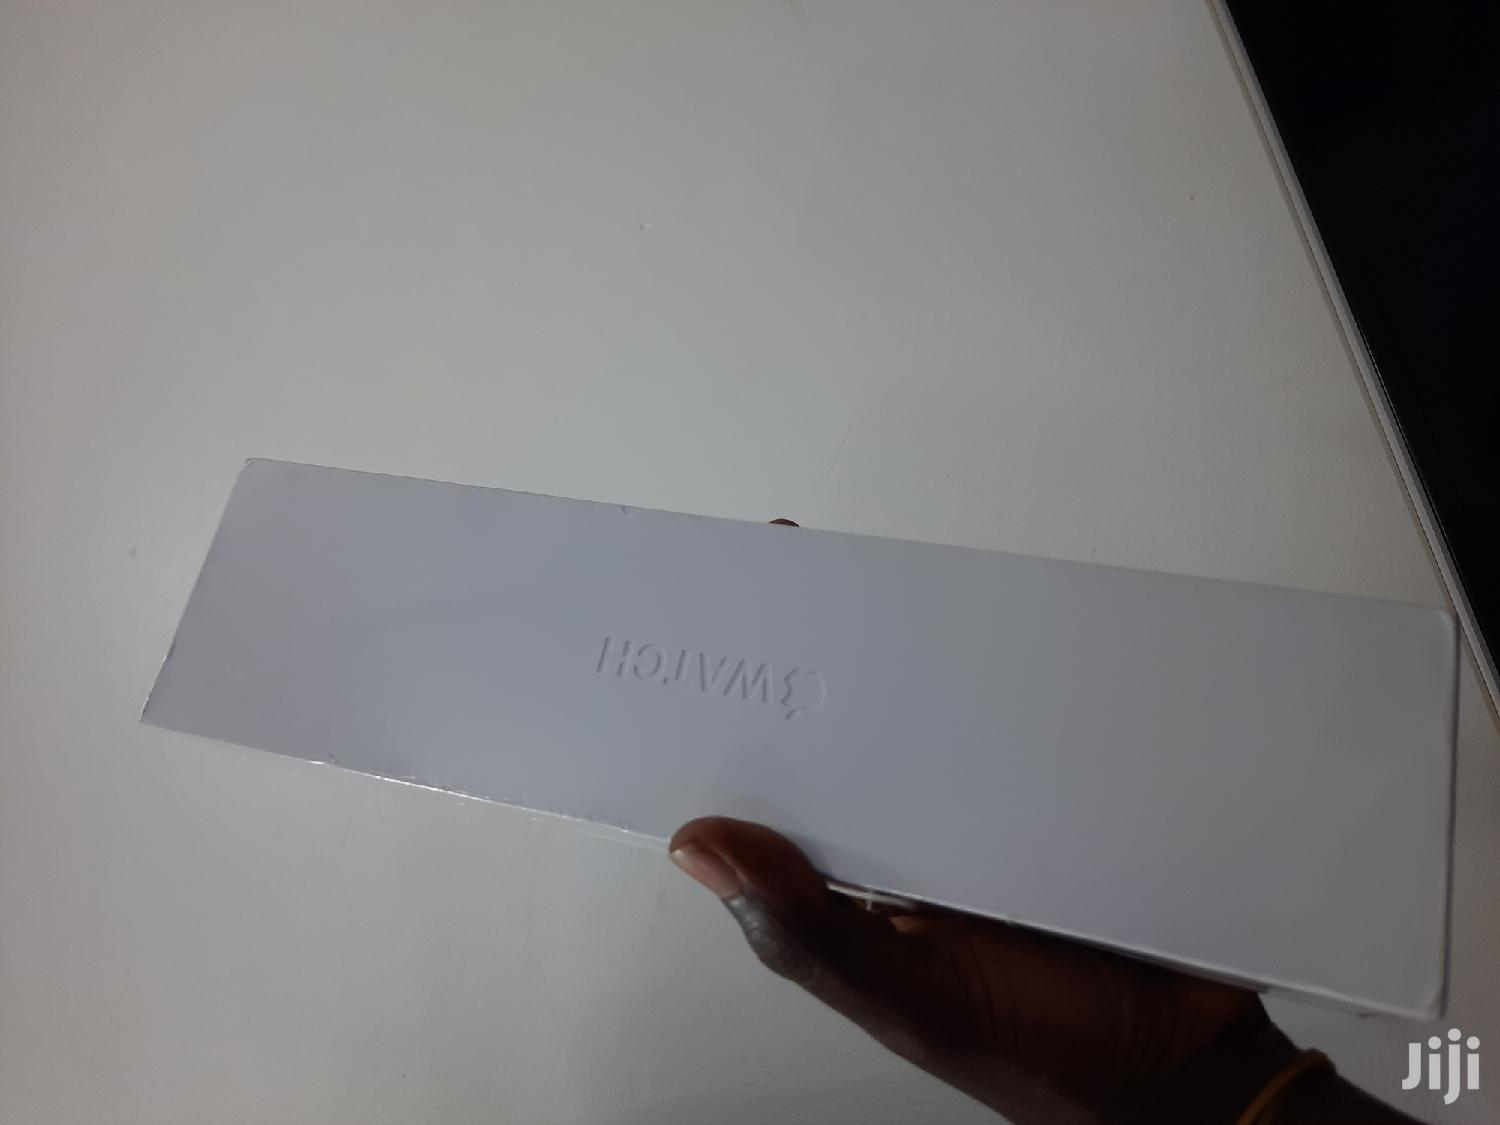 Apple Watch Series 5 | Smart Watches & Trackers for sale in Kampala, Central Region, Uganda